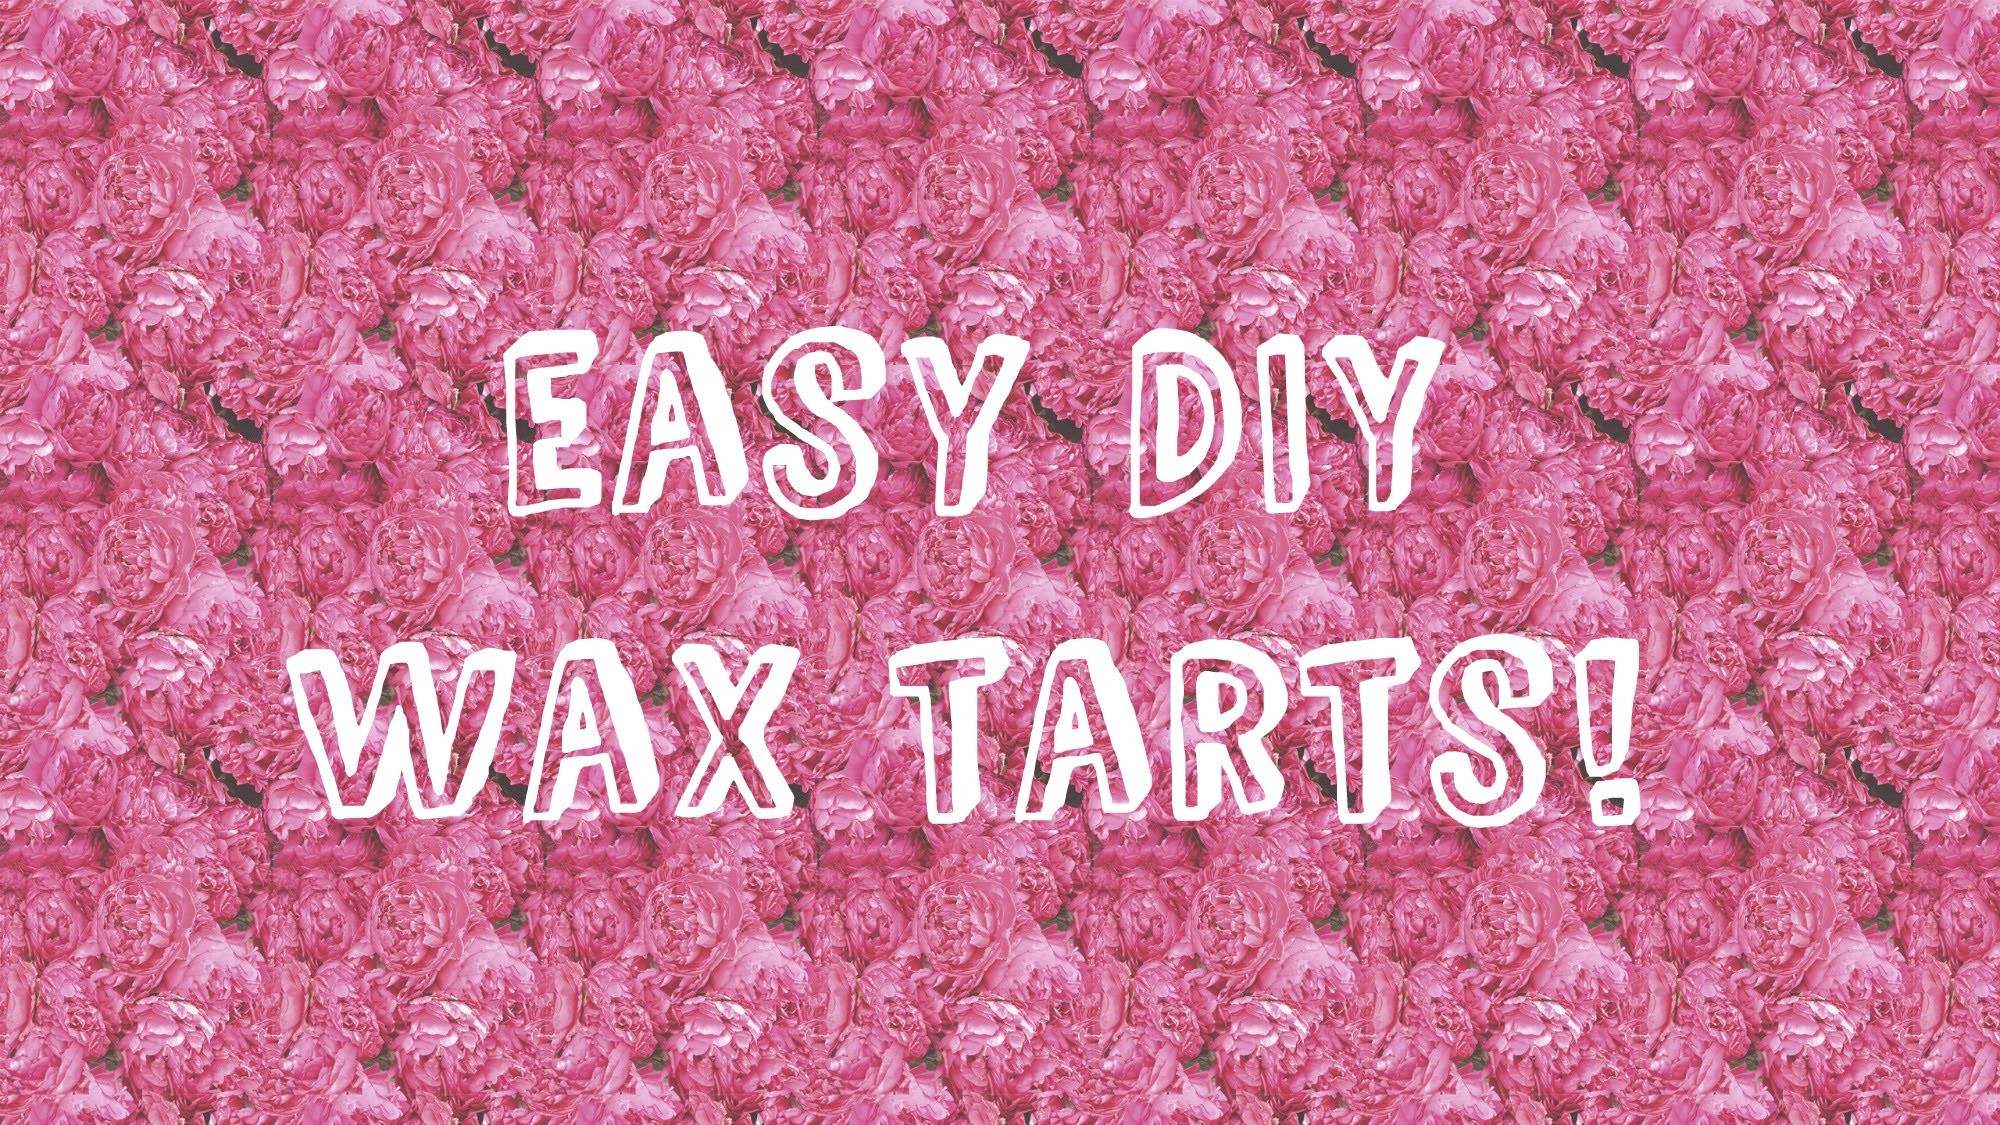 DIY: How to make your own wax melts.tarts!